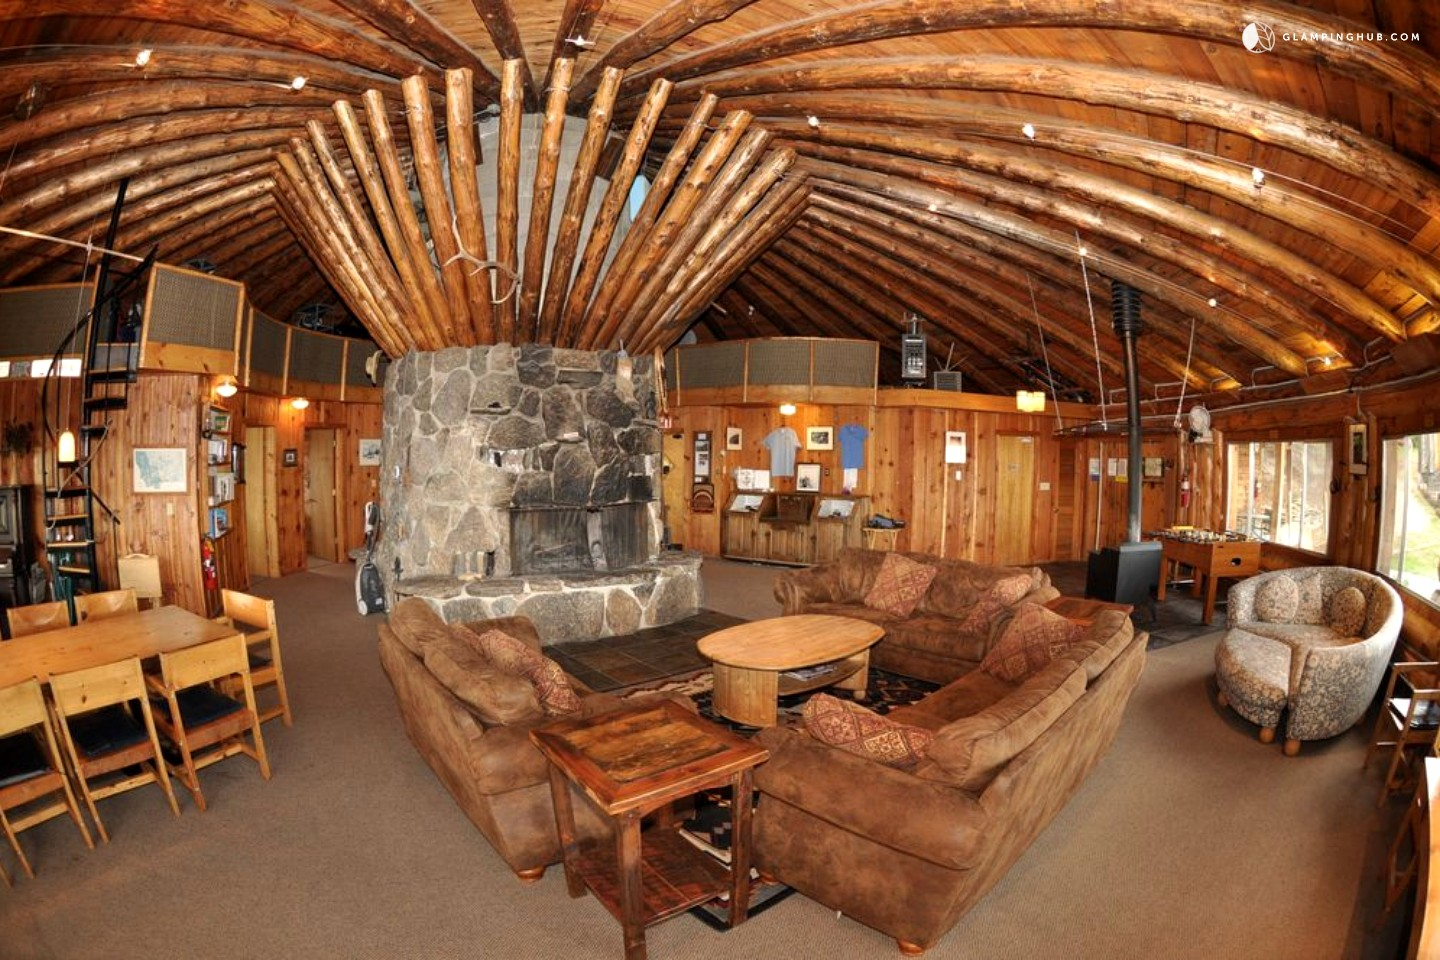 Cabin rental near bitterroot national forest in montana for Alpine lodge